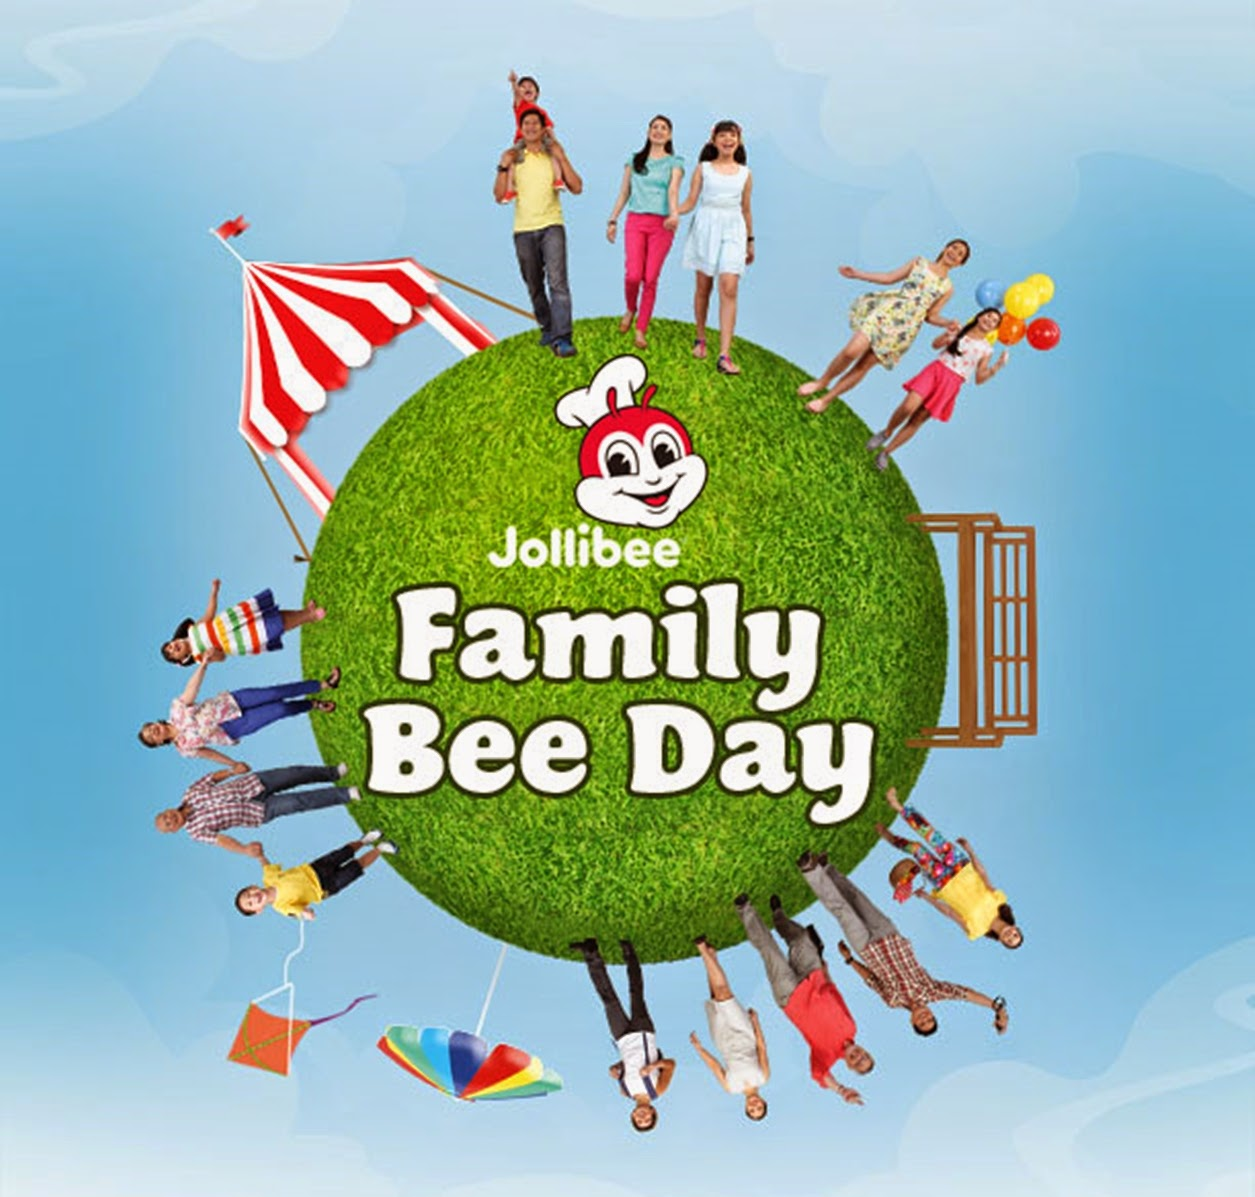 #FamilyBeeDay:Jollibee Family Bee Day